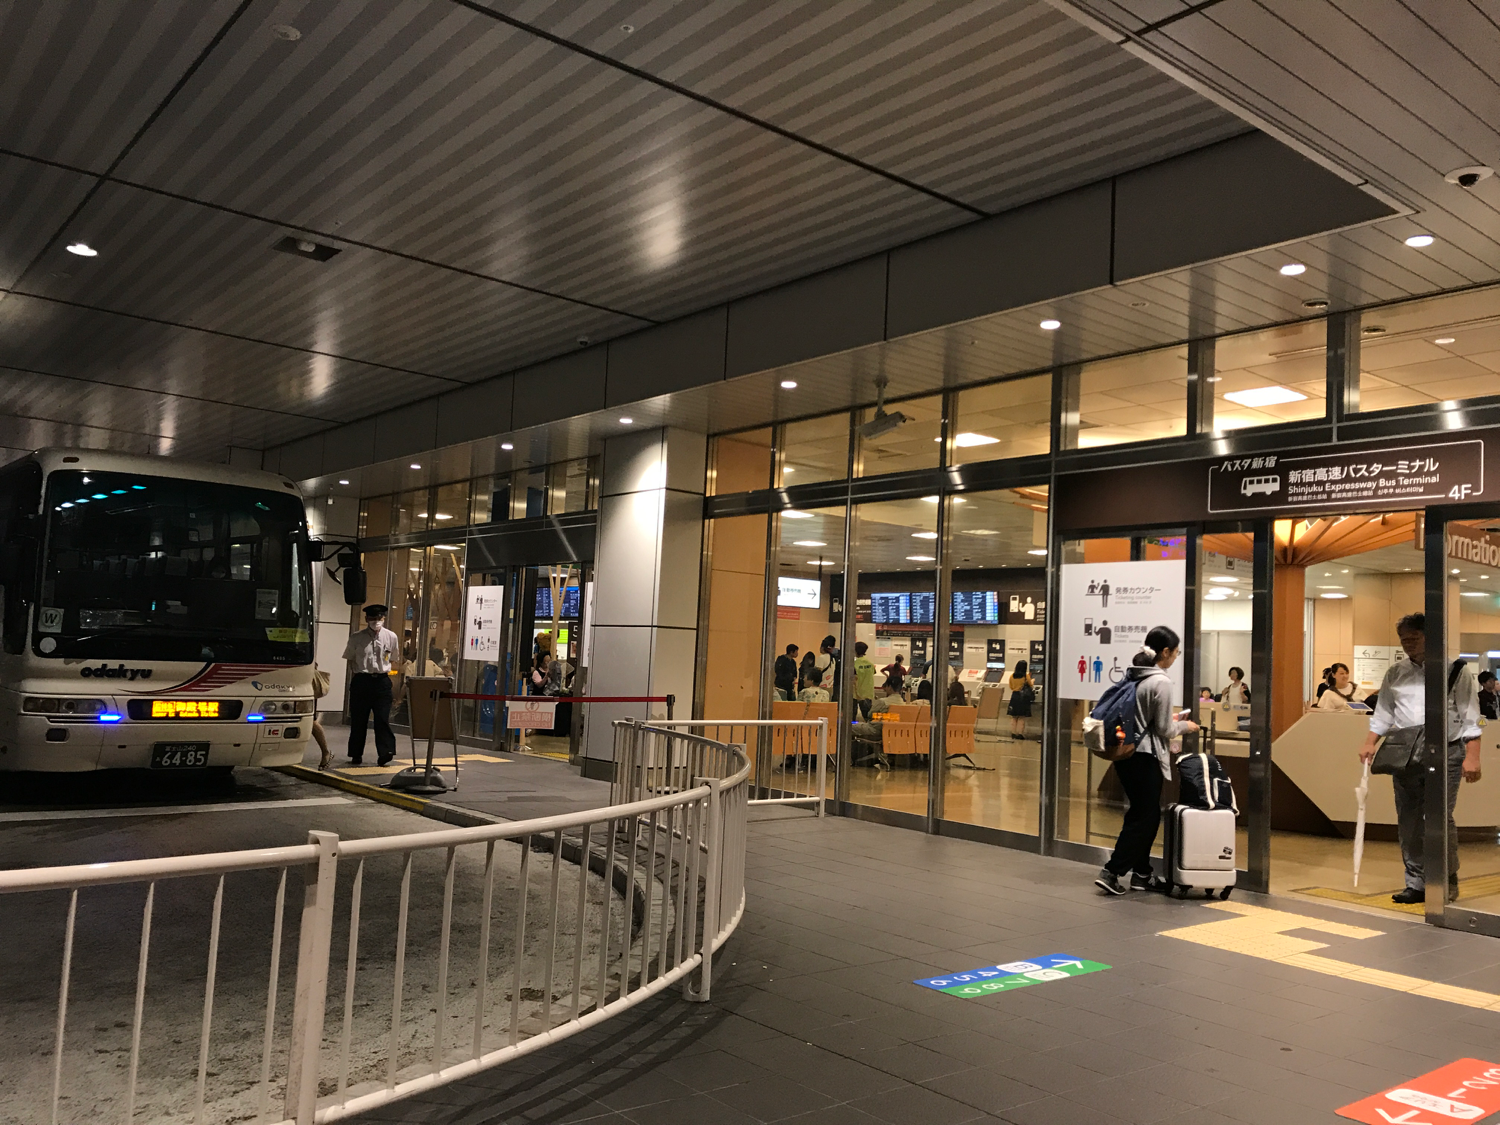 Shinjuku station offers bus service direct to the mountain.